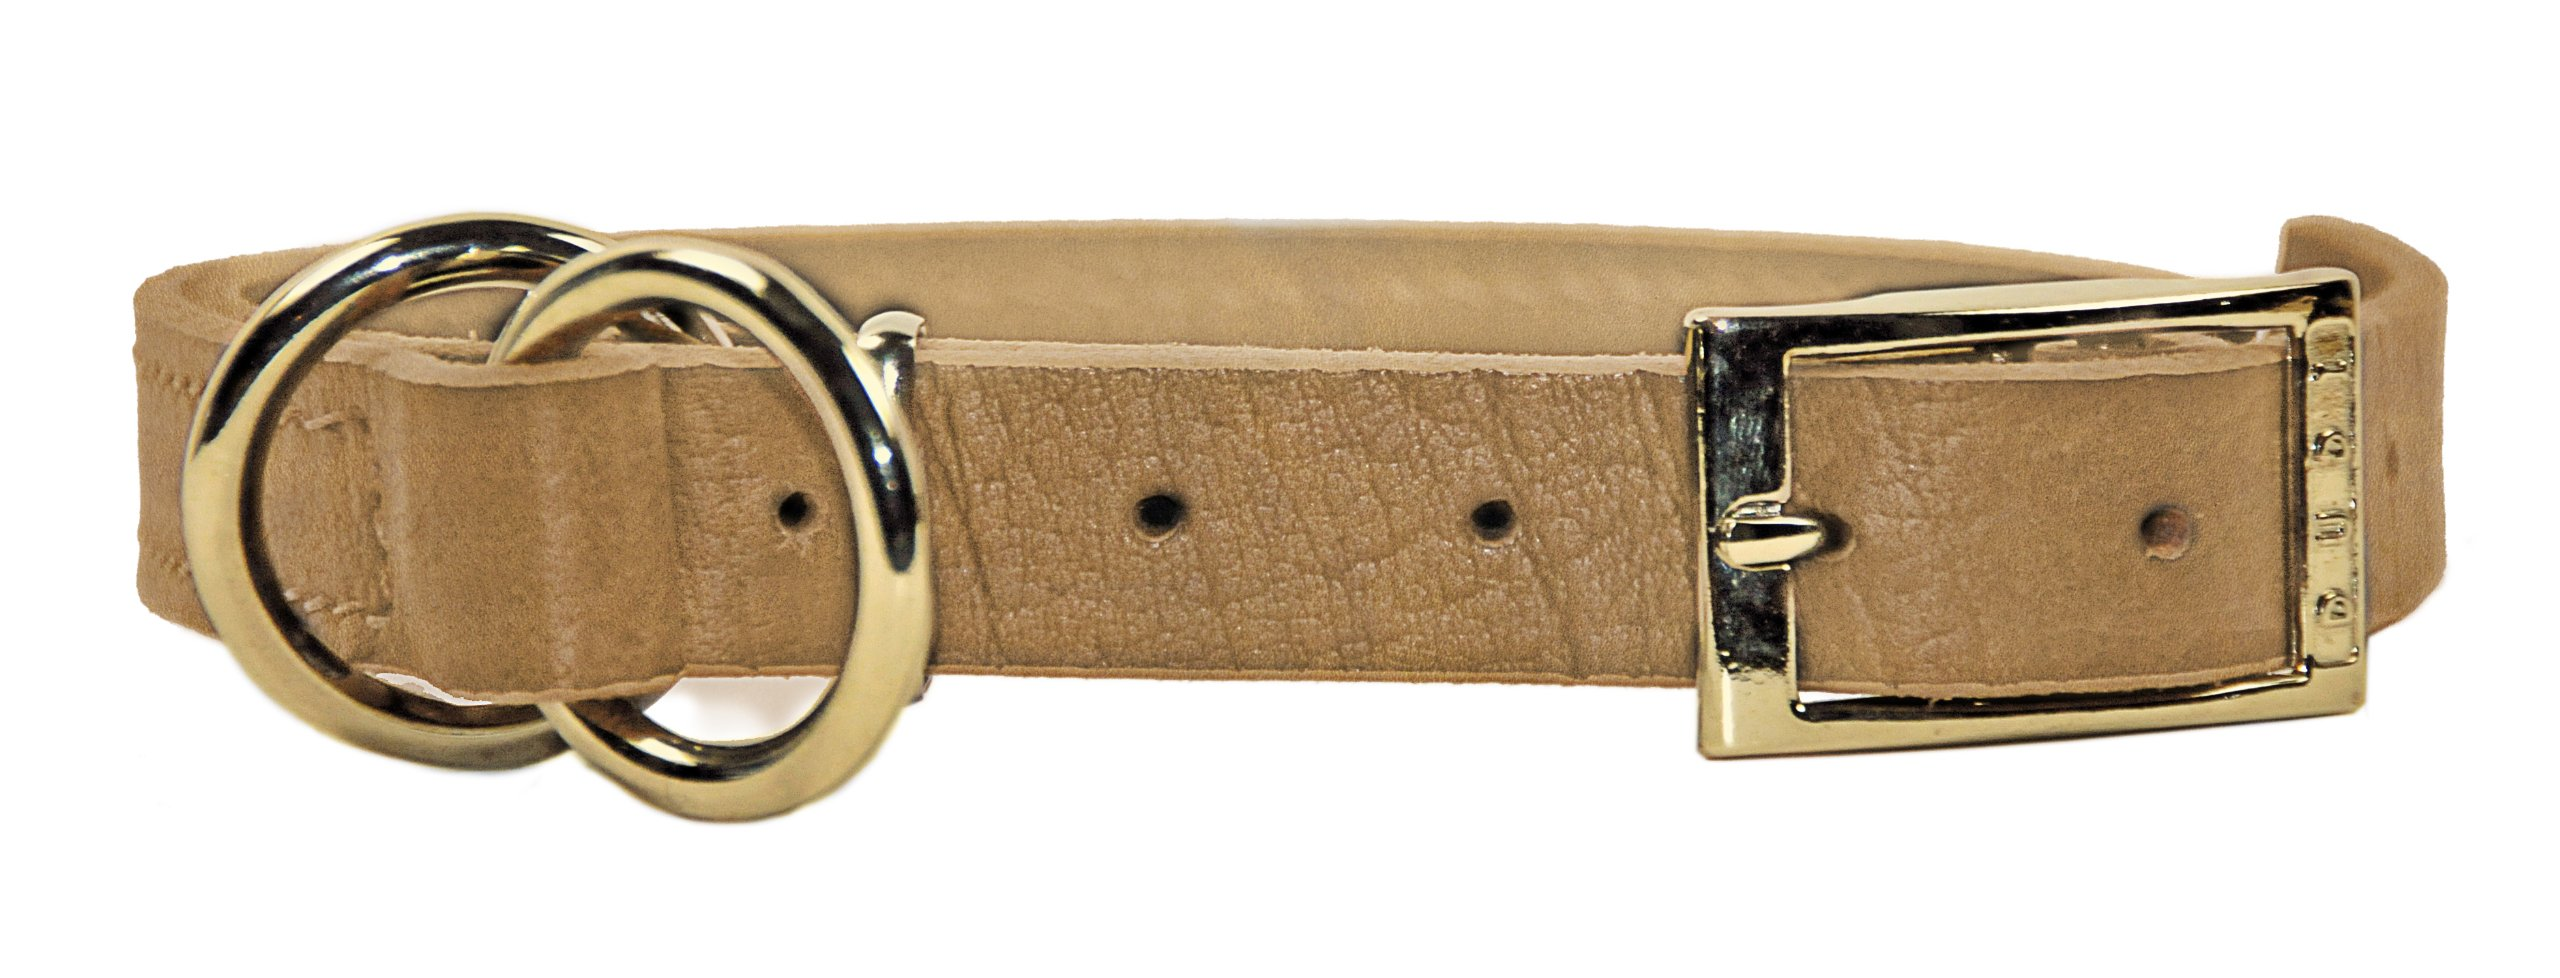 Dean and Tyler ''STRICTLY BUSINESS'', 2-in-1 Dog Choke Collar with Solid Brass Hardware - Tan - Size 22-Inch by 1-Inch - Fits Neck 20-Inch to 22-Inch